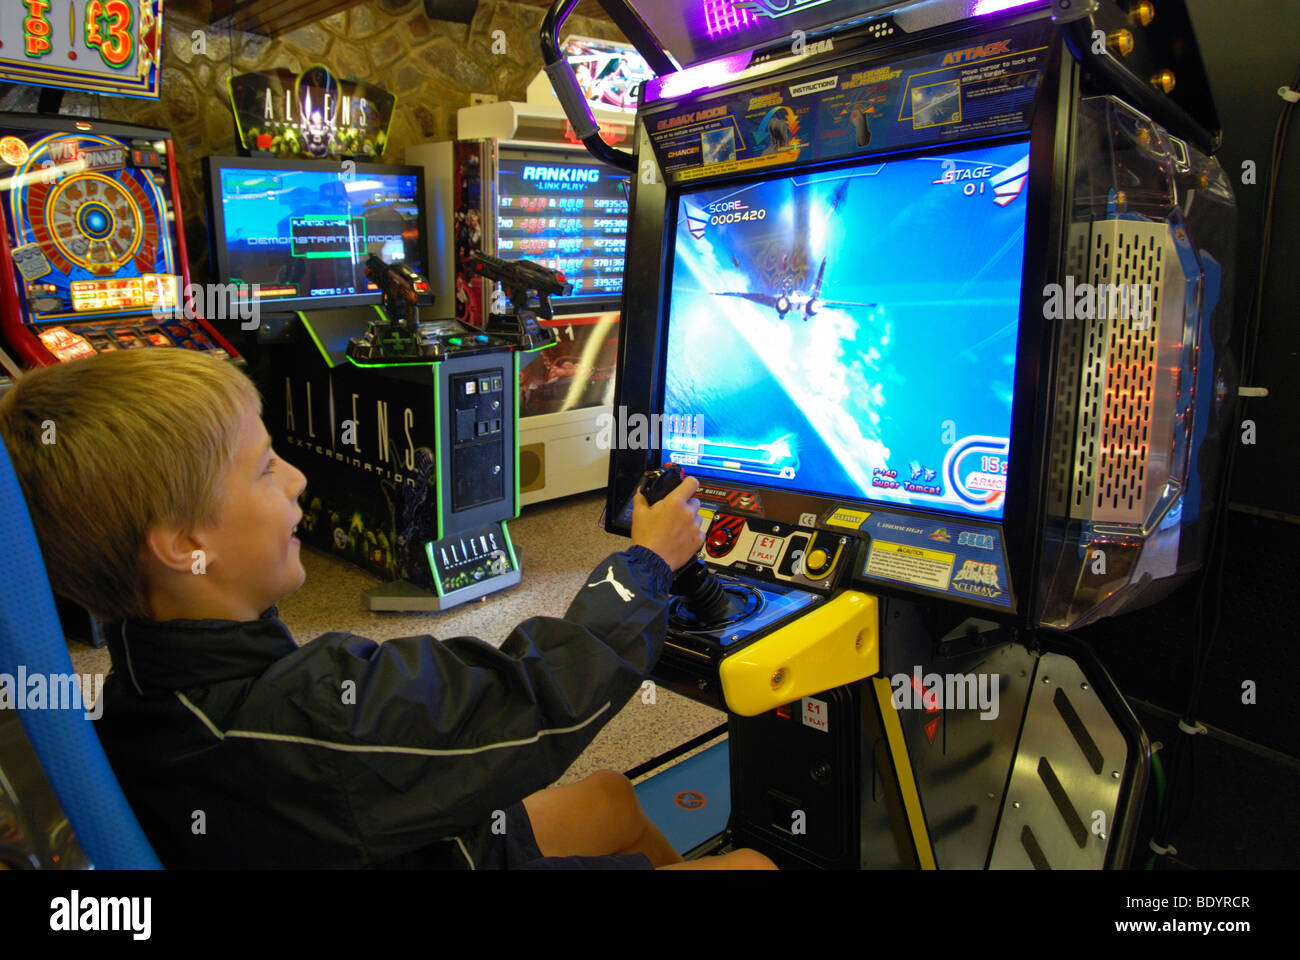 a young boy playing on a computer simulated war game in an amusment arcade in blackpool,england,uk - Stock Image